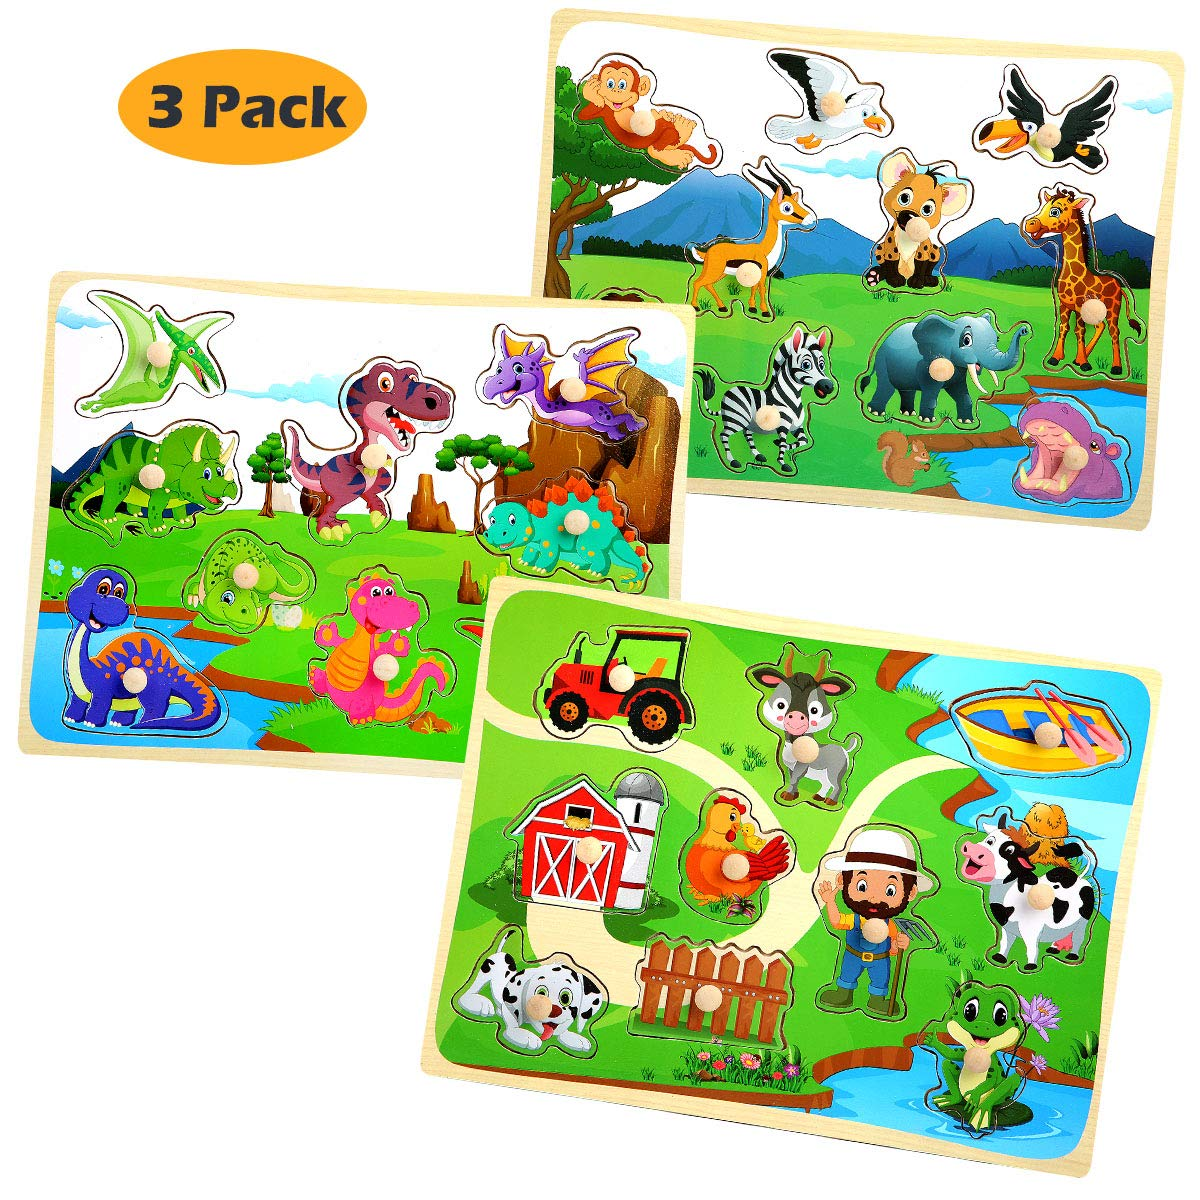 Wooden Puzzles for Toddlers Kids Ages 1 2 3 Years Old Set of 3 - Dinosaur, Safari, Farm Animal Pegged Puzzle Toy Color Shape Sorting Matching Learning Educational Toys for Preschool by HUADADA